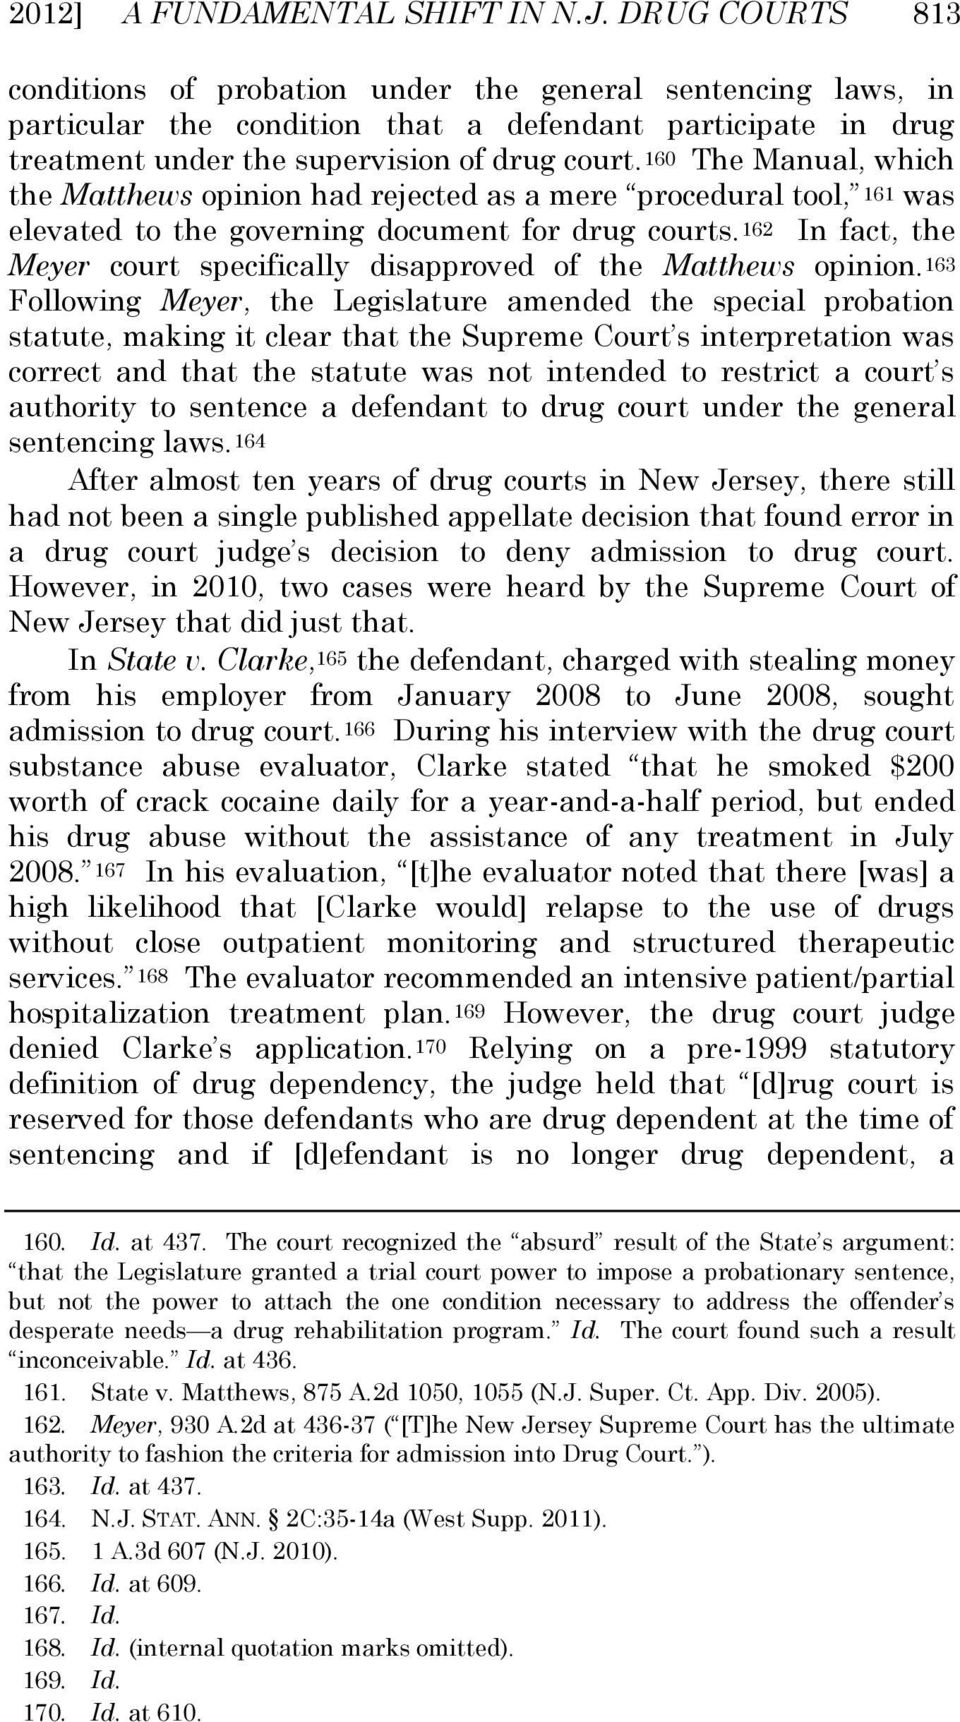 160 The Manual, which the Matthews opinion had rejected as a mere procedural tool, 161 was elevated to the governing document for drug courts.